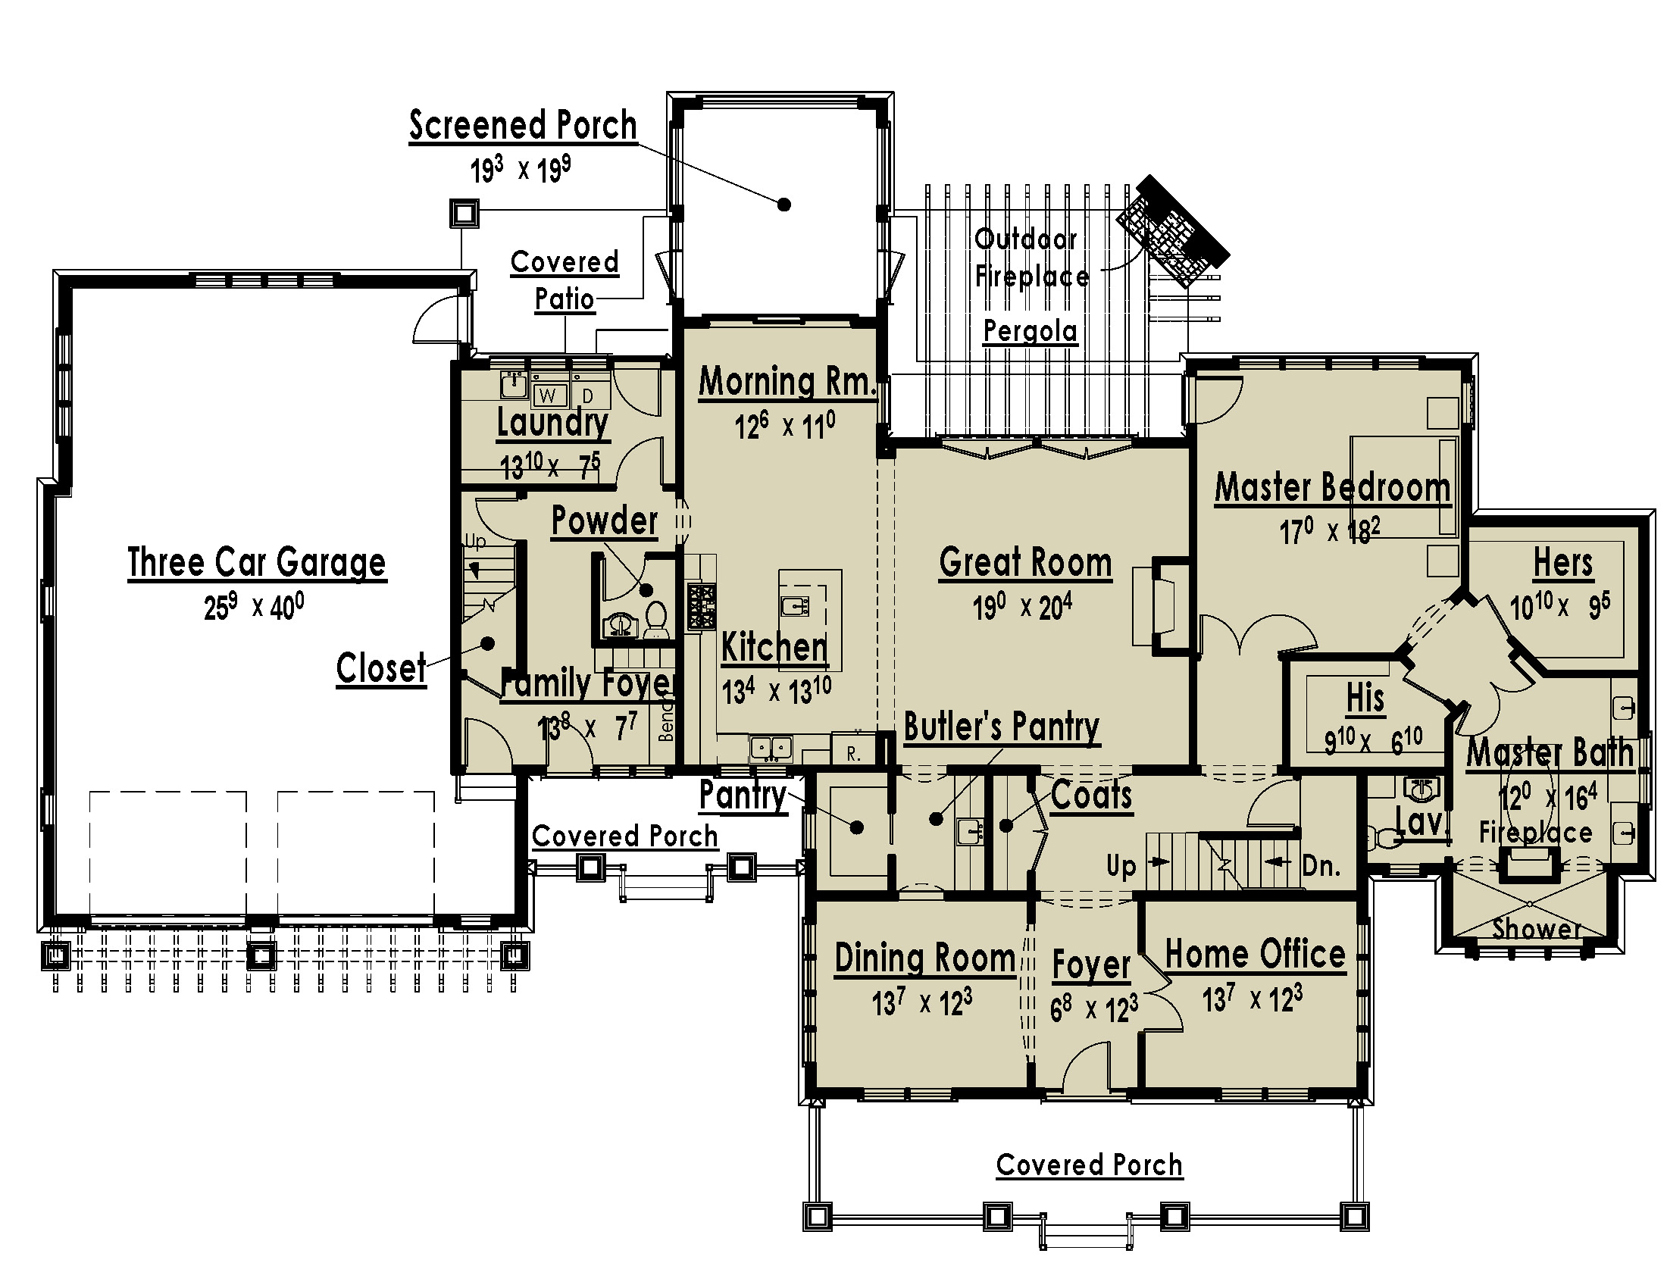 2 master suite home plans house plans home designs - Houses bedroom first floor fit needs ...